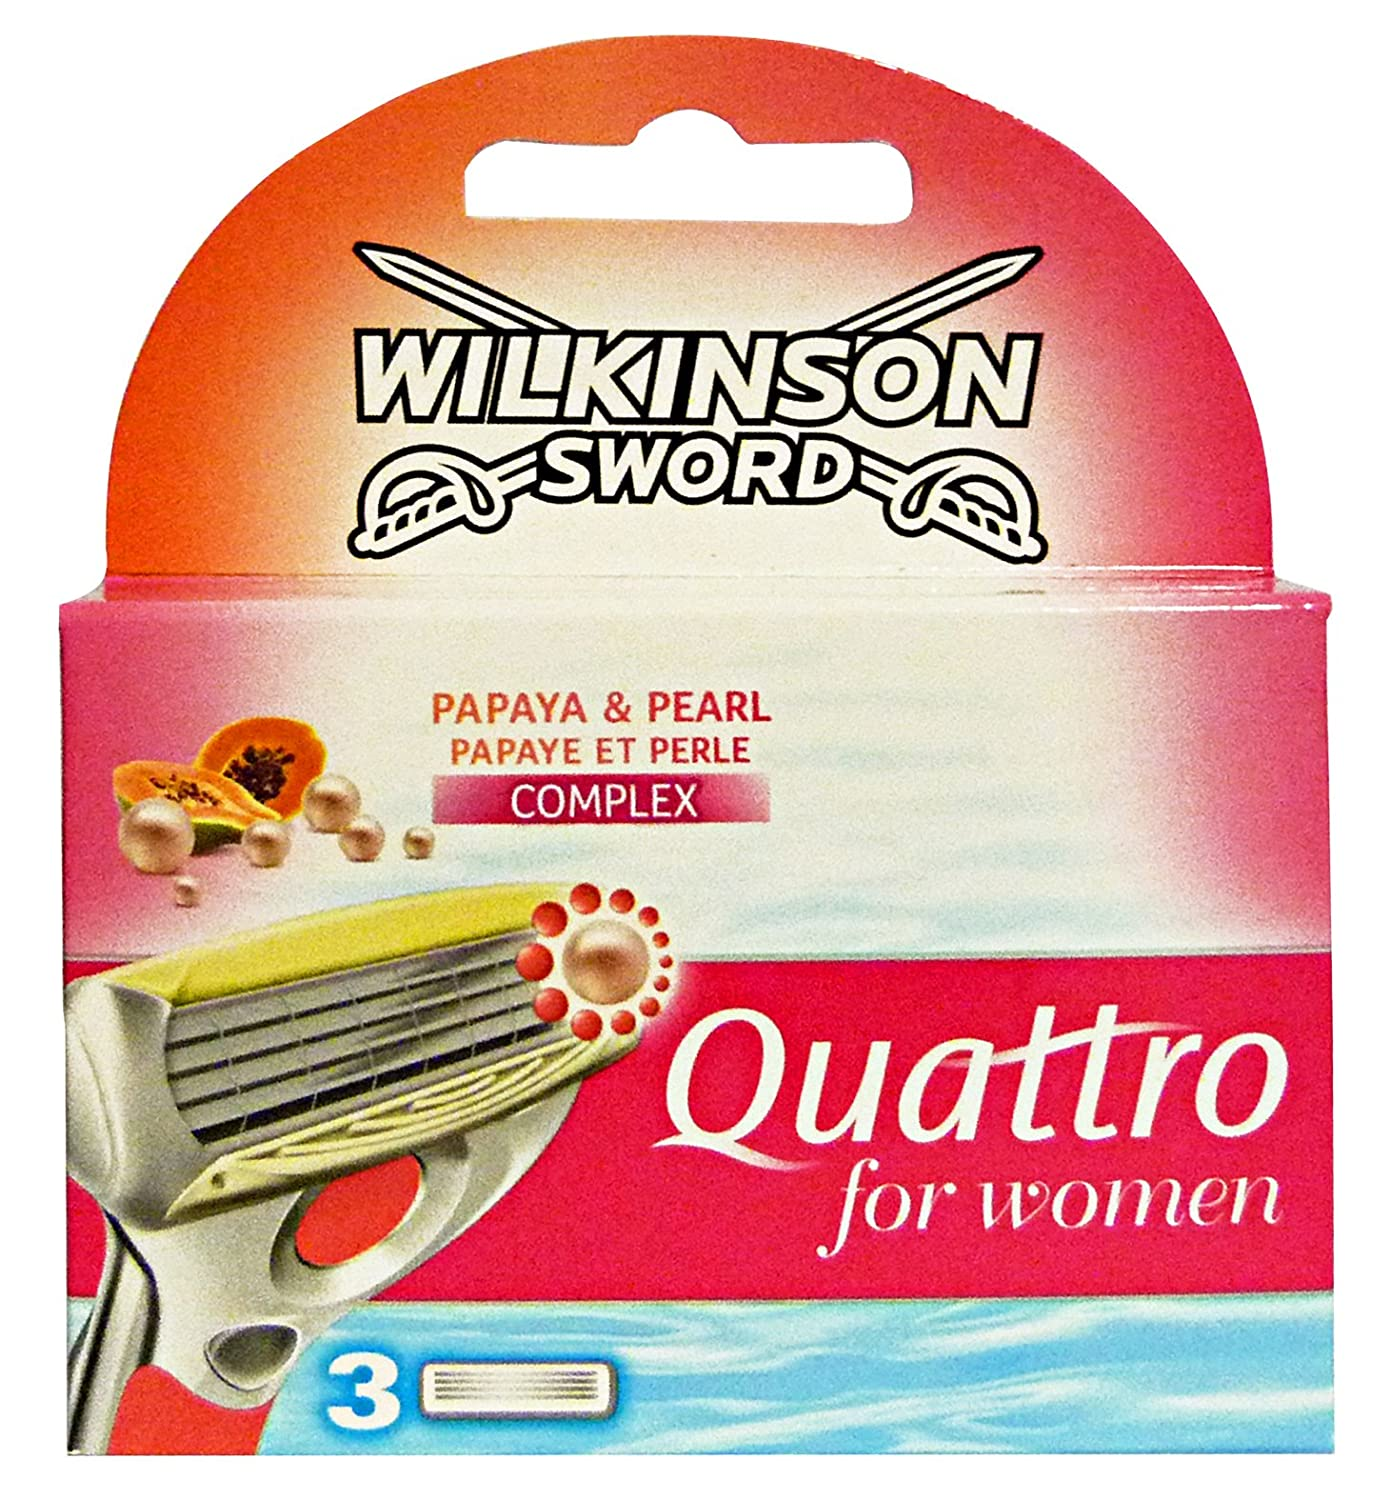 Wilkinson Sword Quattro for Women Razor Blades - Pack of 3 BeautyCentre 3865391